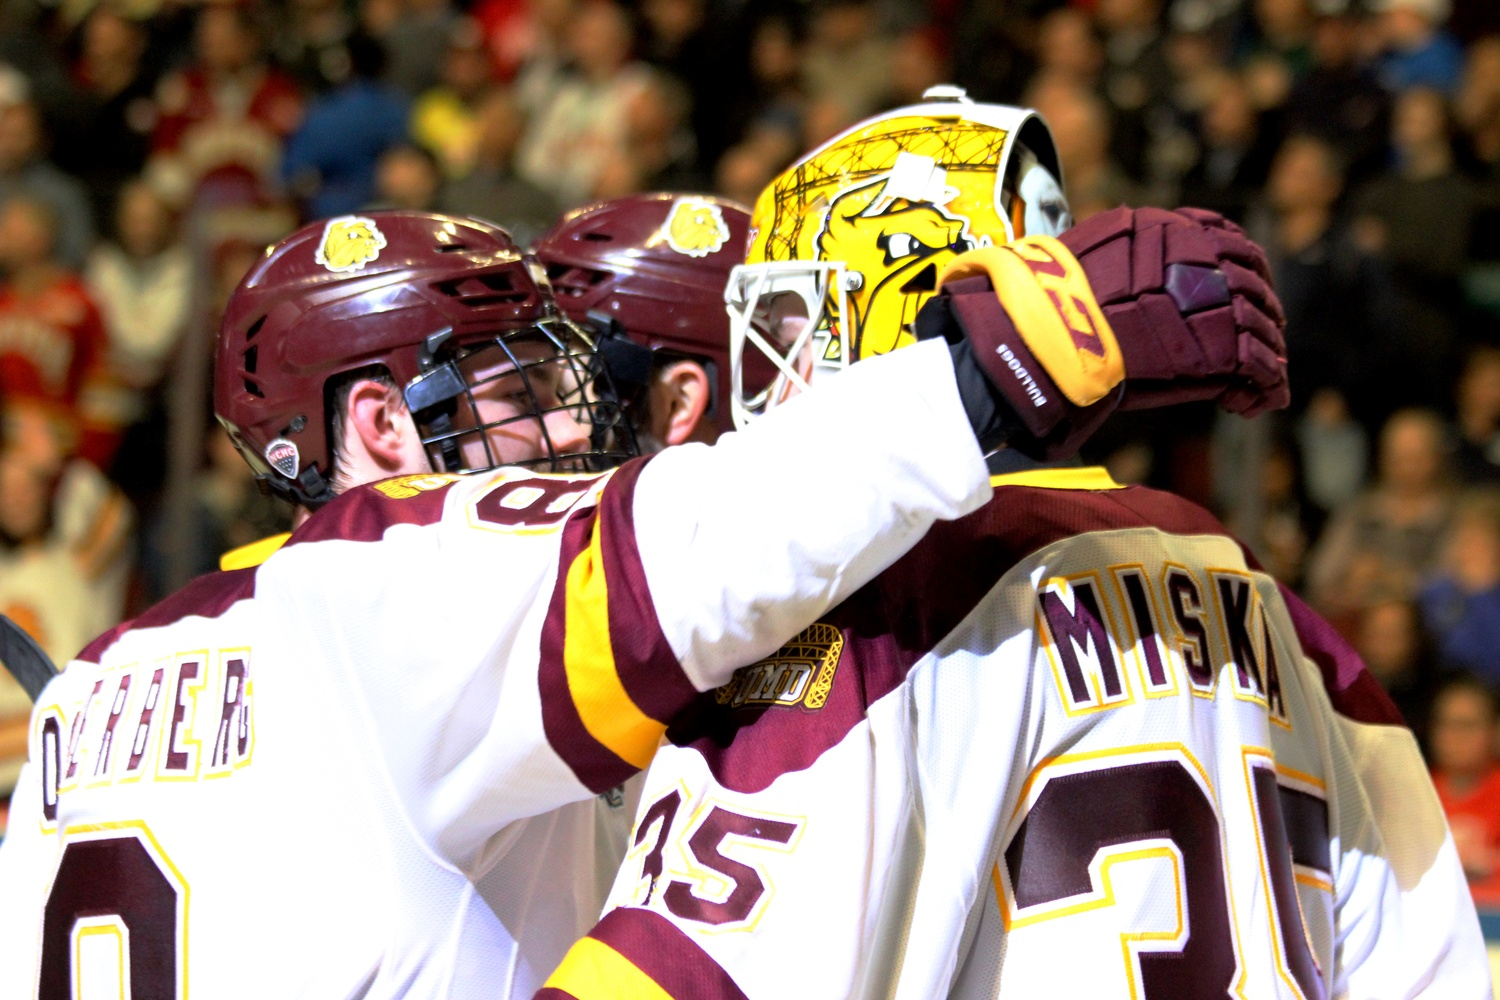 Minnesota-Duluth forward Kyle Osterberg hugs goaltender Hunter Miska in celebration of their win over the Crimson. Minnesota-Duluth advances to the NCAA finals on Saturday.